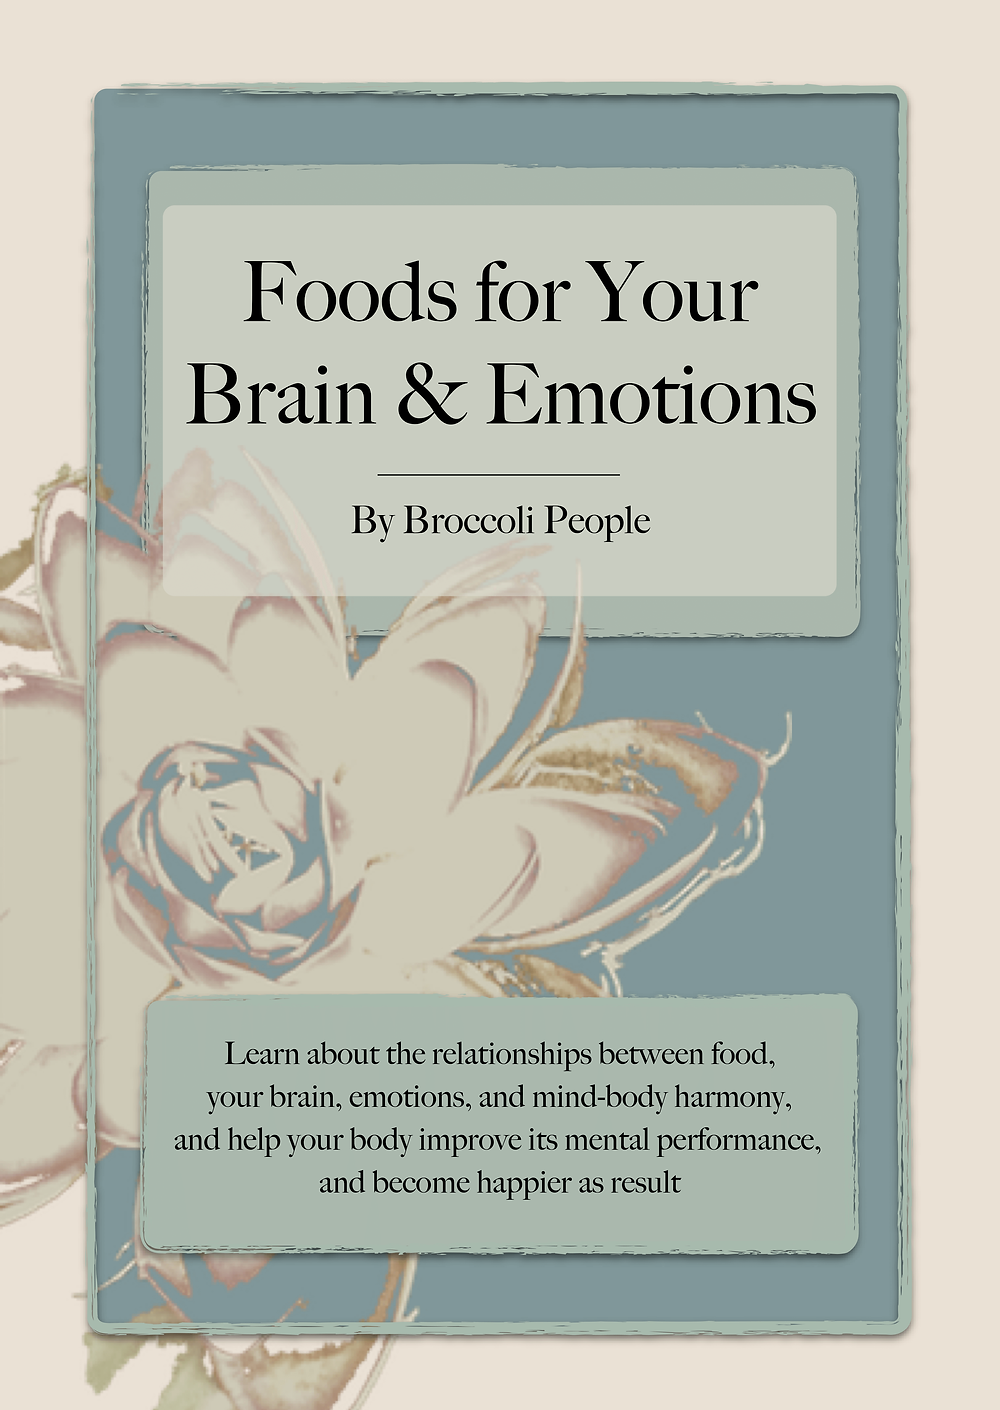 Foods for Your Brain & Emotions Book - Learn How Food Affects Your Brain & Emotional State